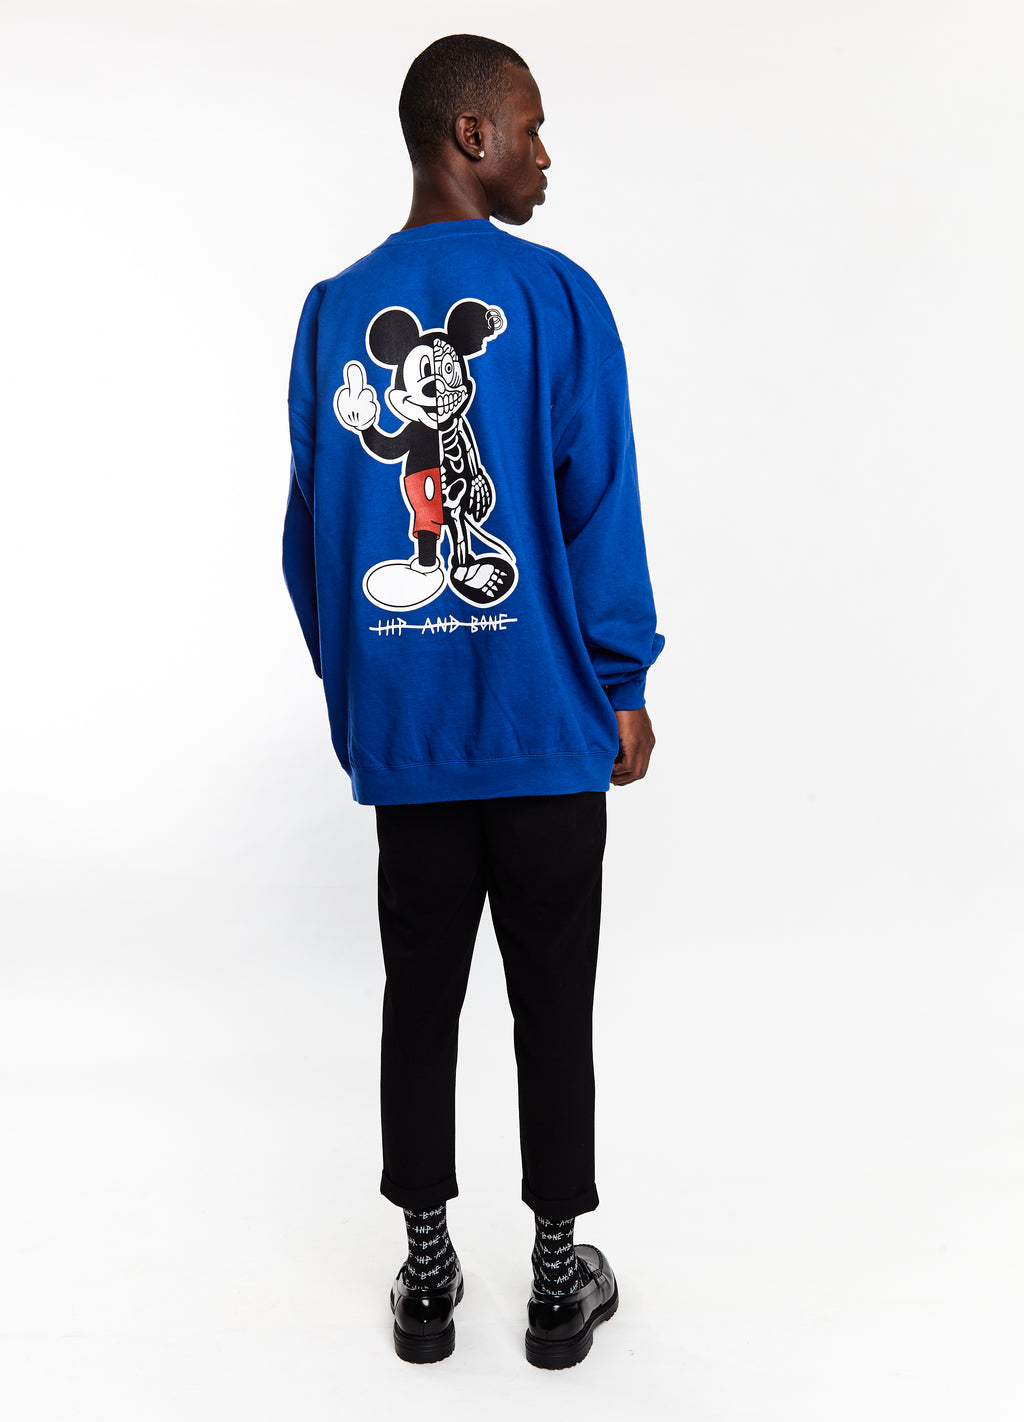 TWISTED MOUSE CREW ROYAL BLUE - HIP AND BONE